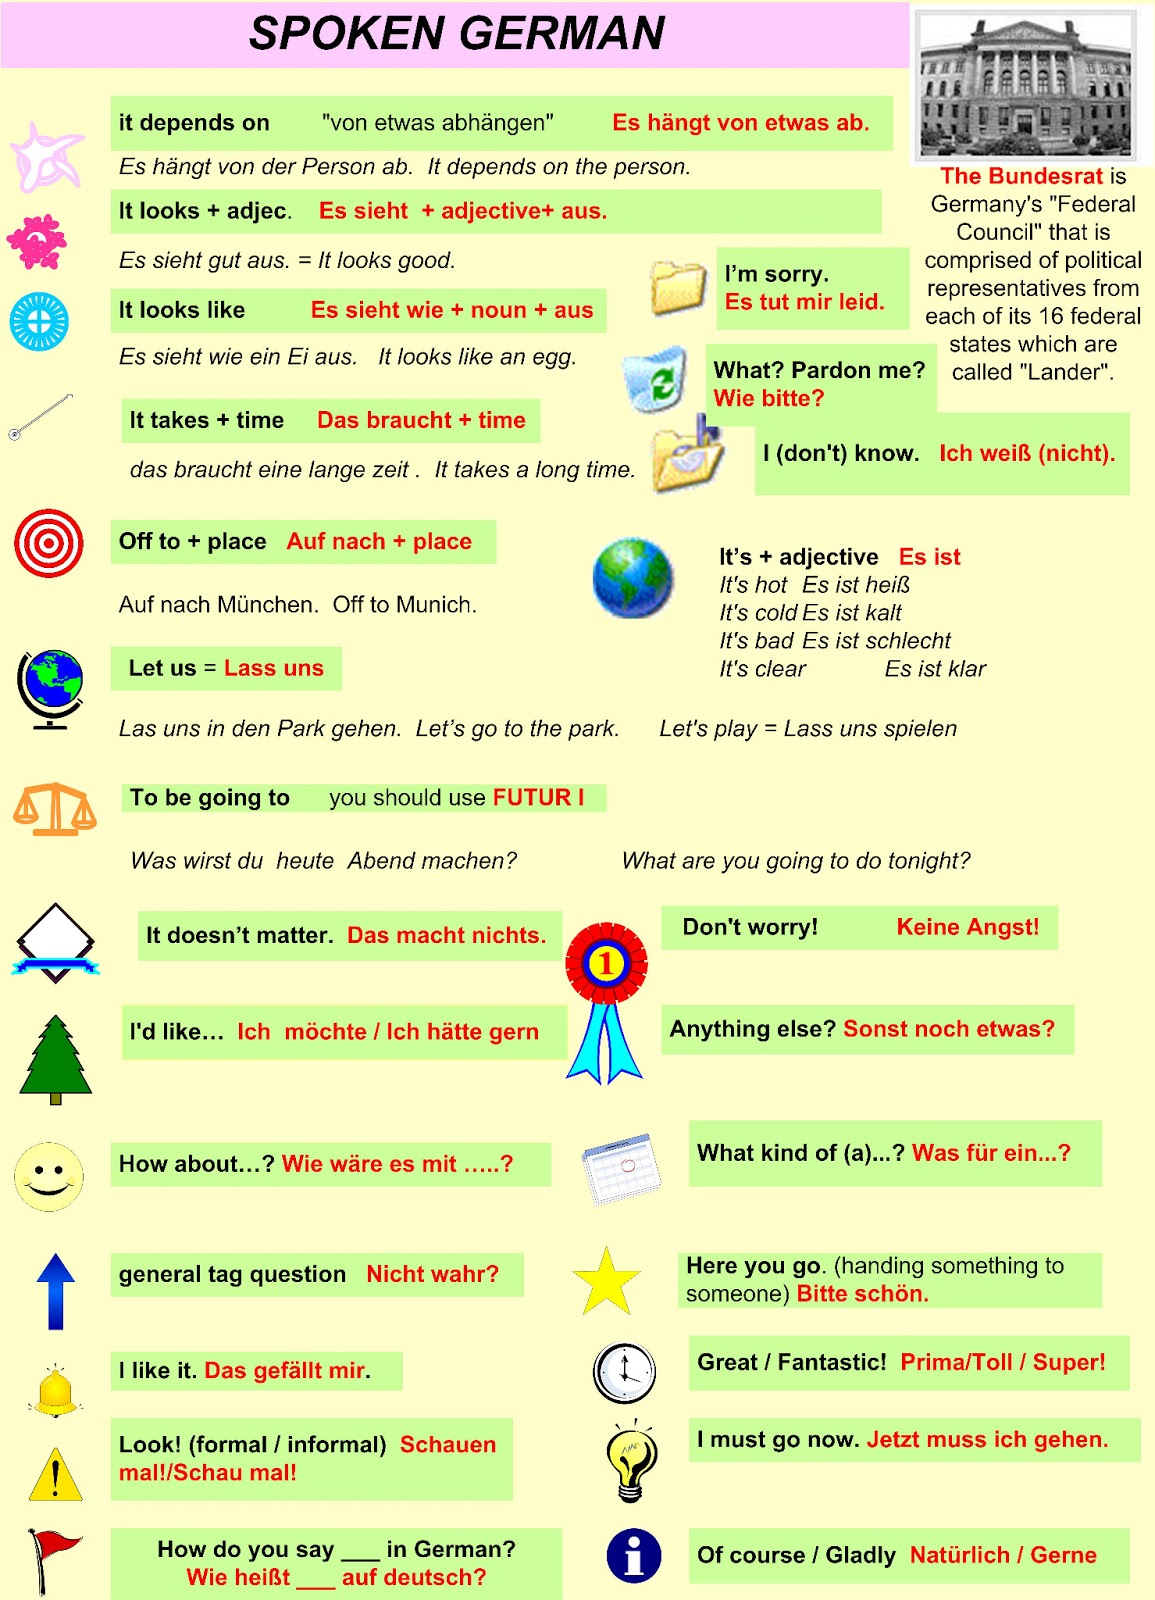 english french slang idioms 10 number idioms more find this pin and more on english idioms, slang, proverbs and such by yourskype 10 number learn and improve your english.